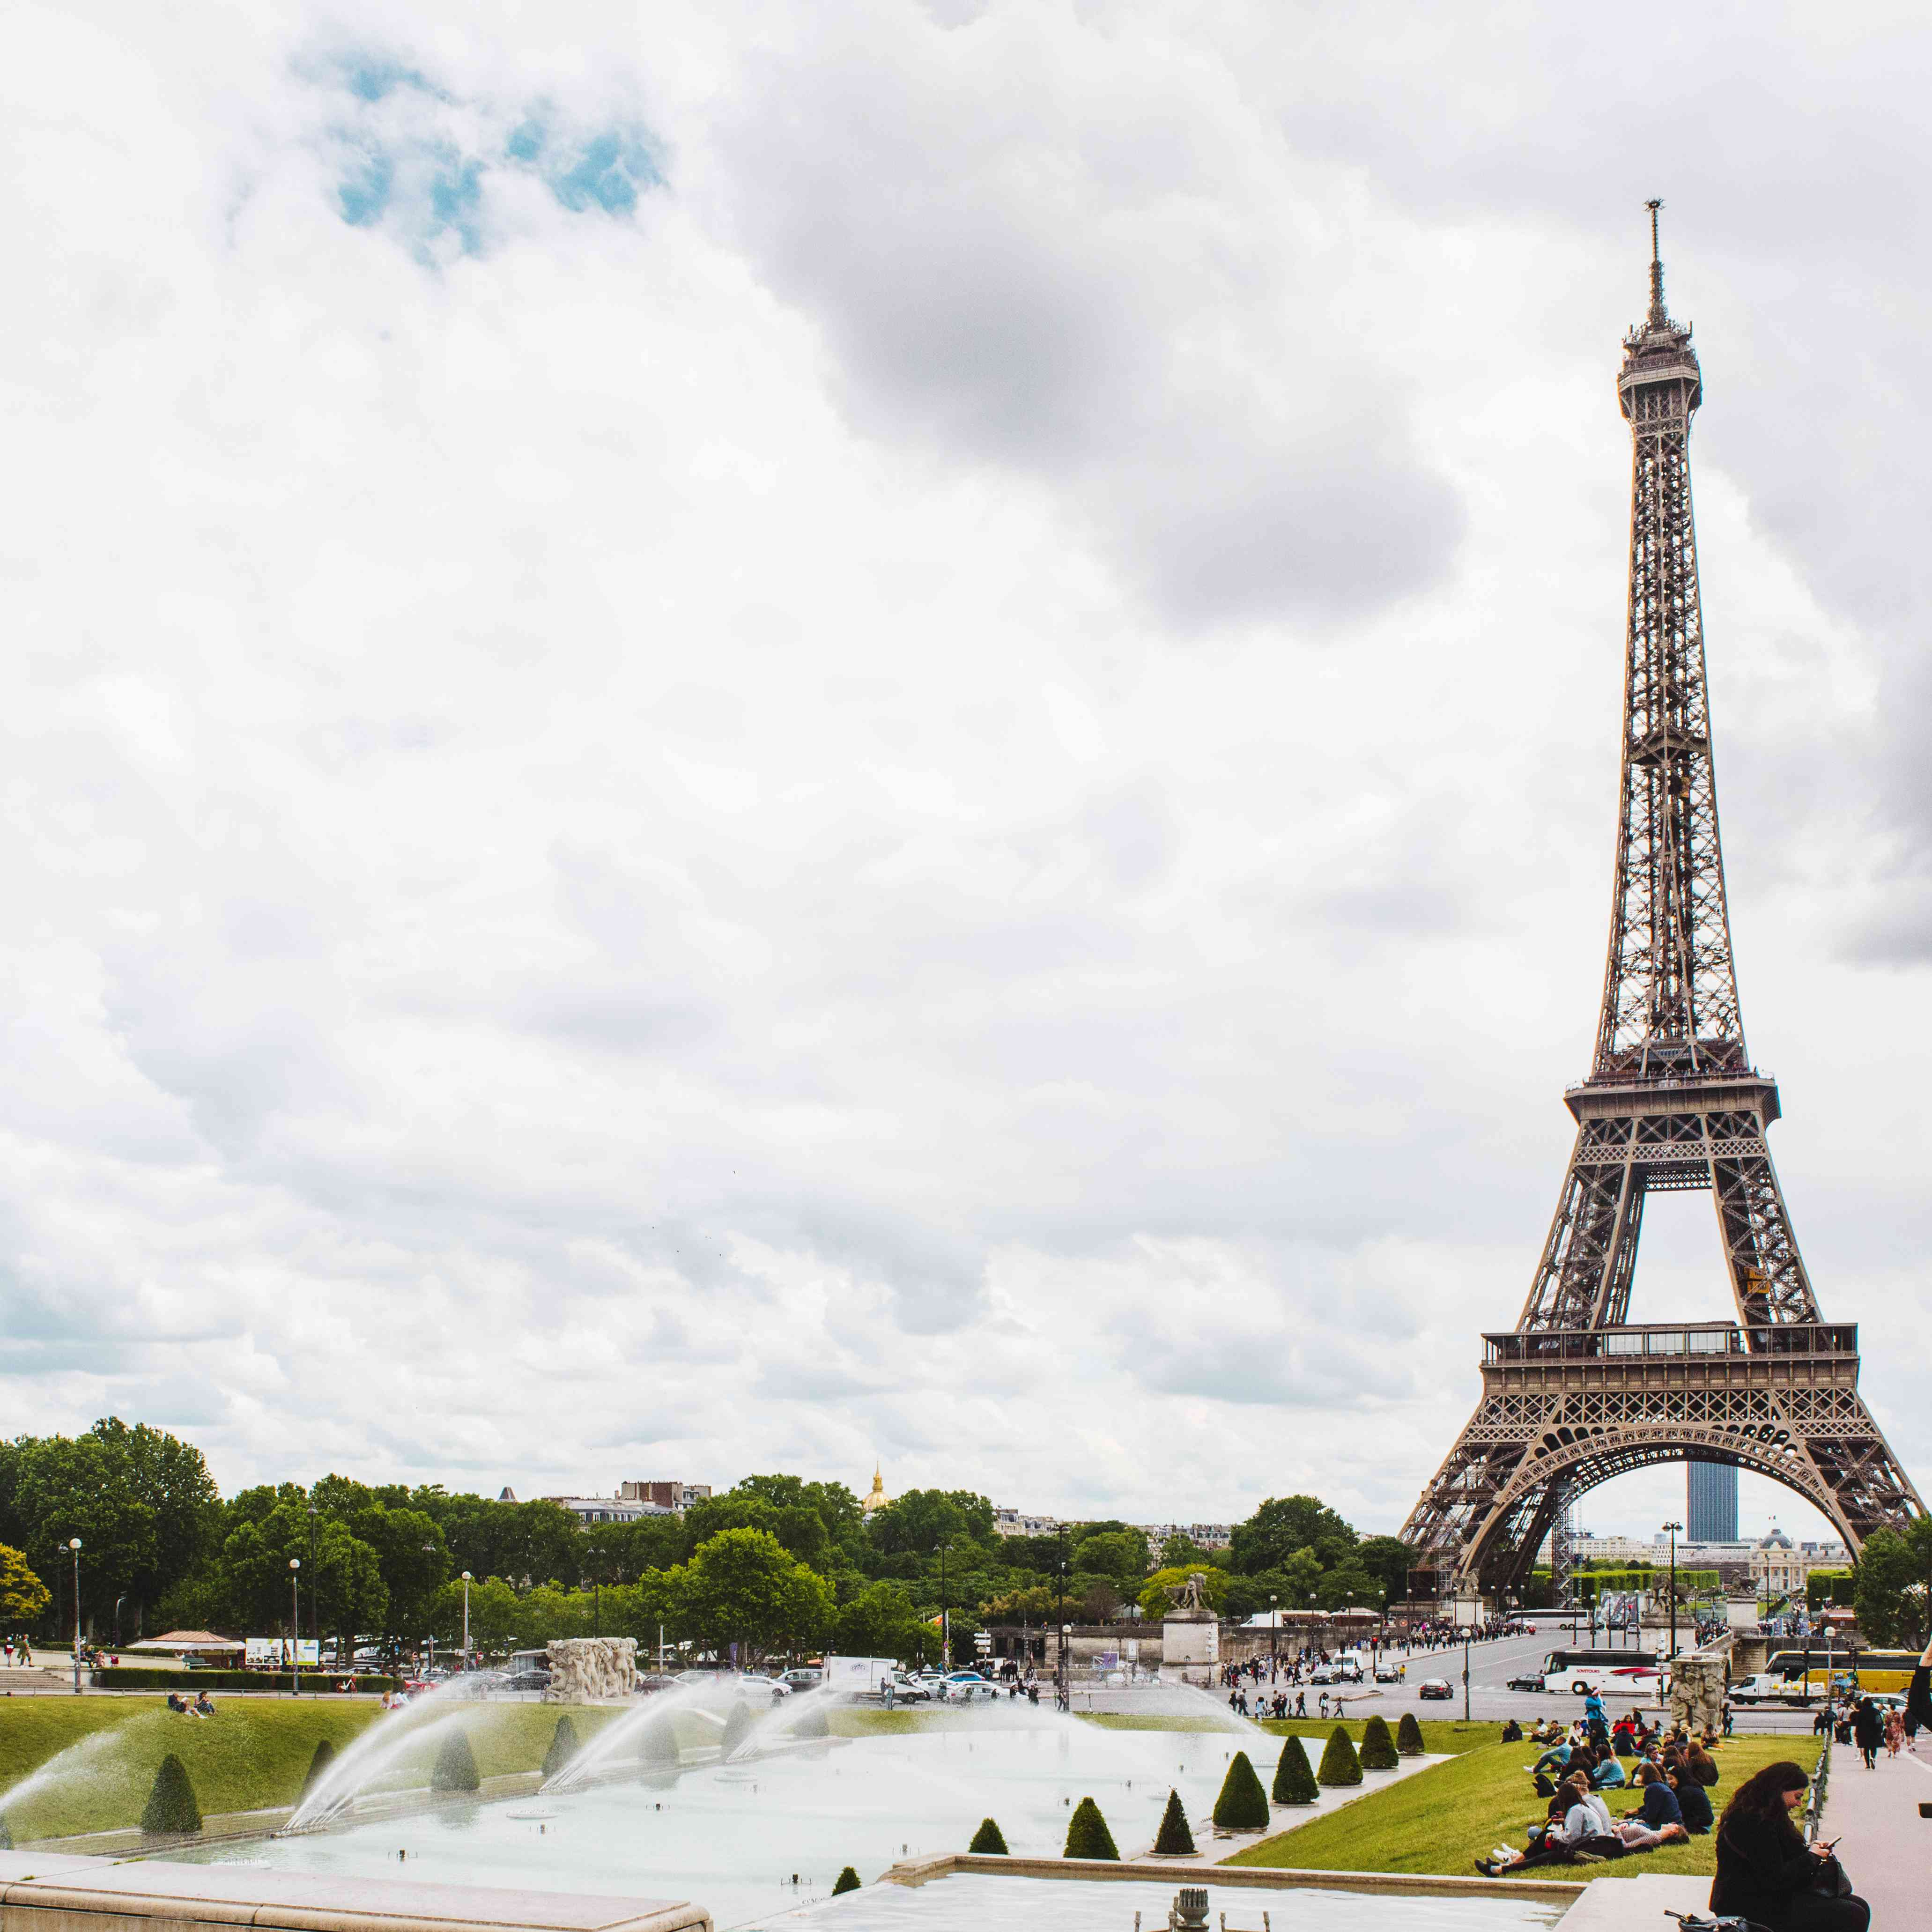 View of the Eiffel Tower from Trocadero Square